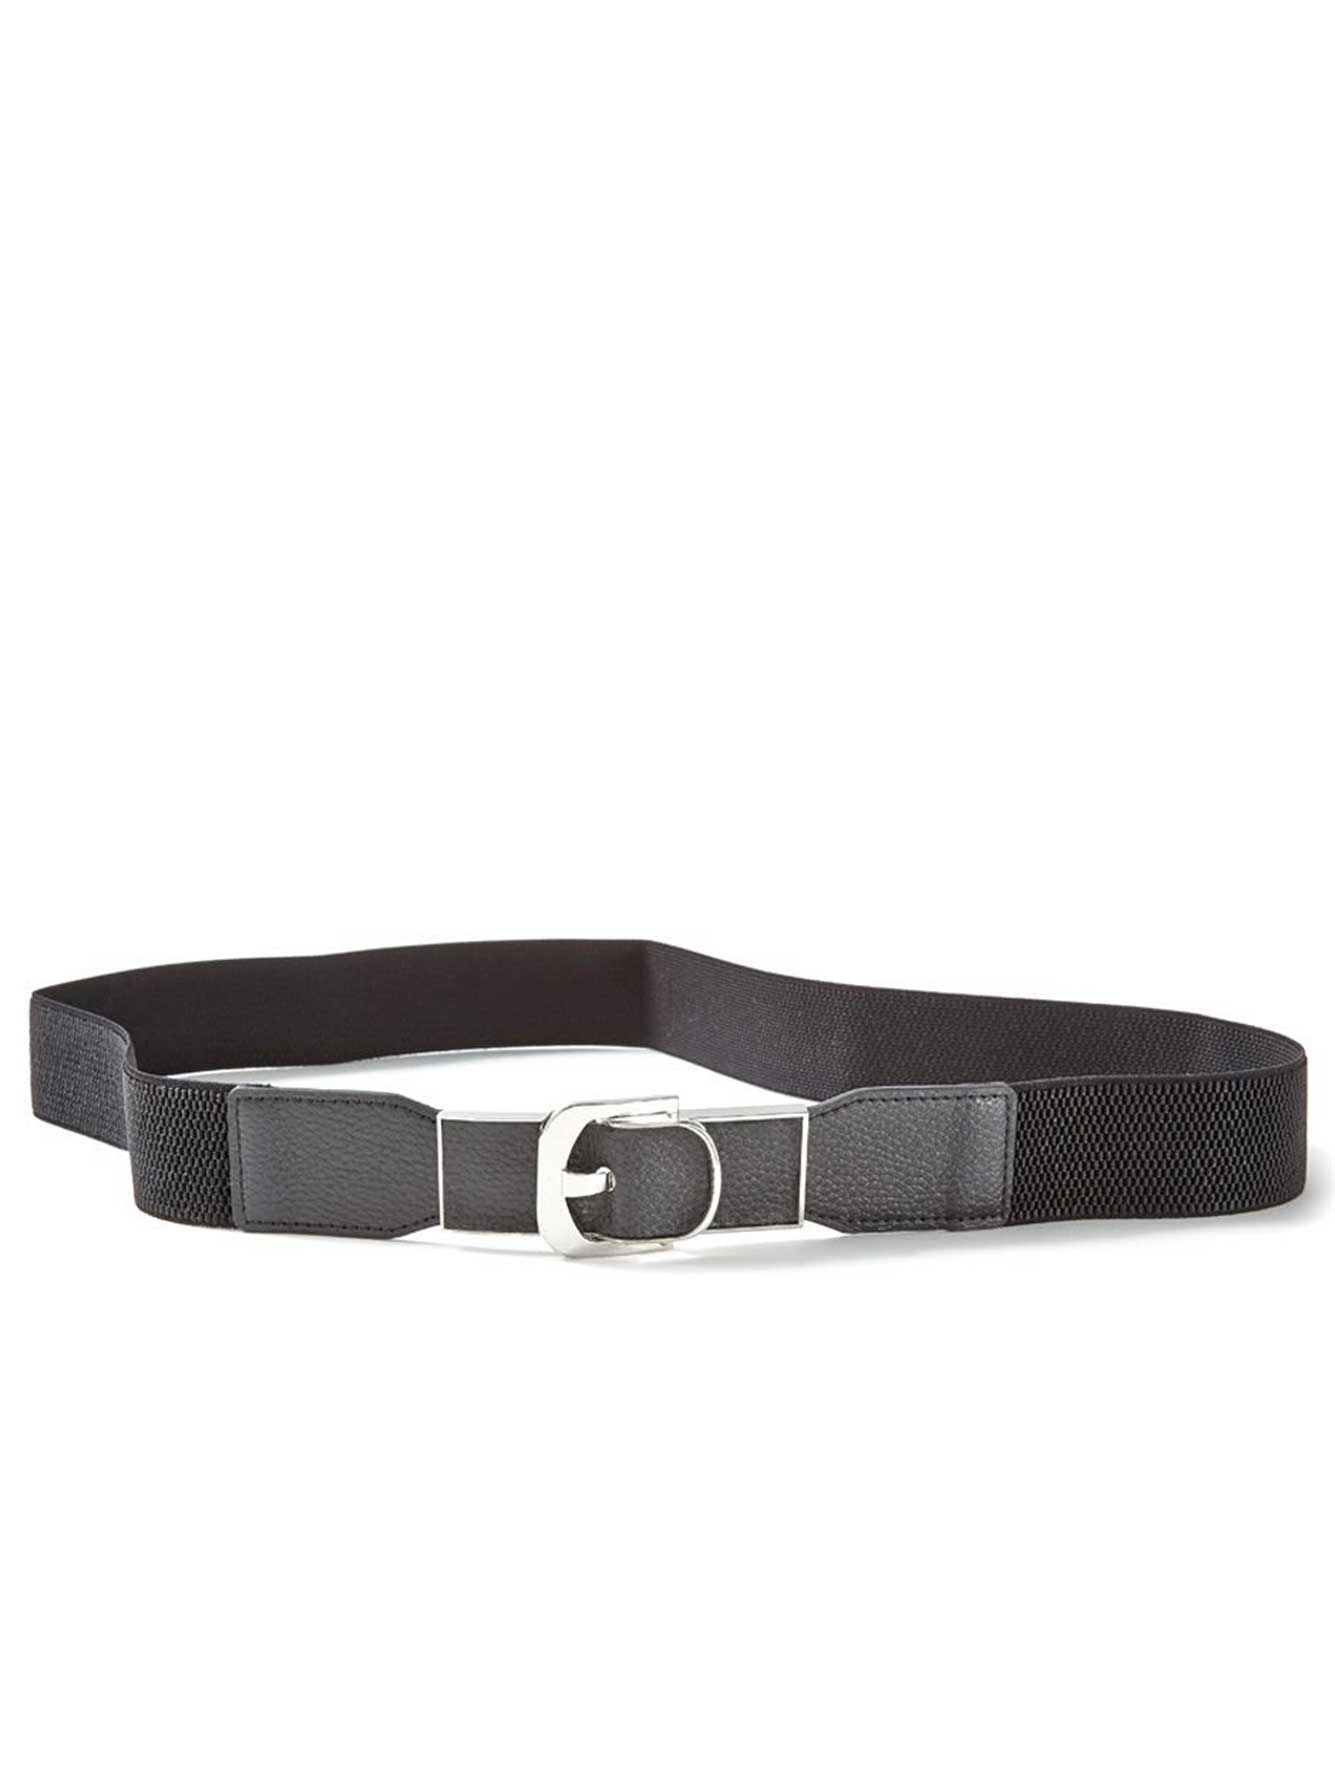 Perfect for your style, plus sized leather, chain & stretch belts, from Lane Bryant. Nobody fits your unique style like Lane Bryant!